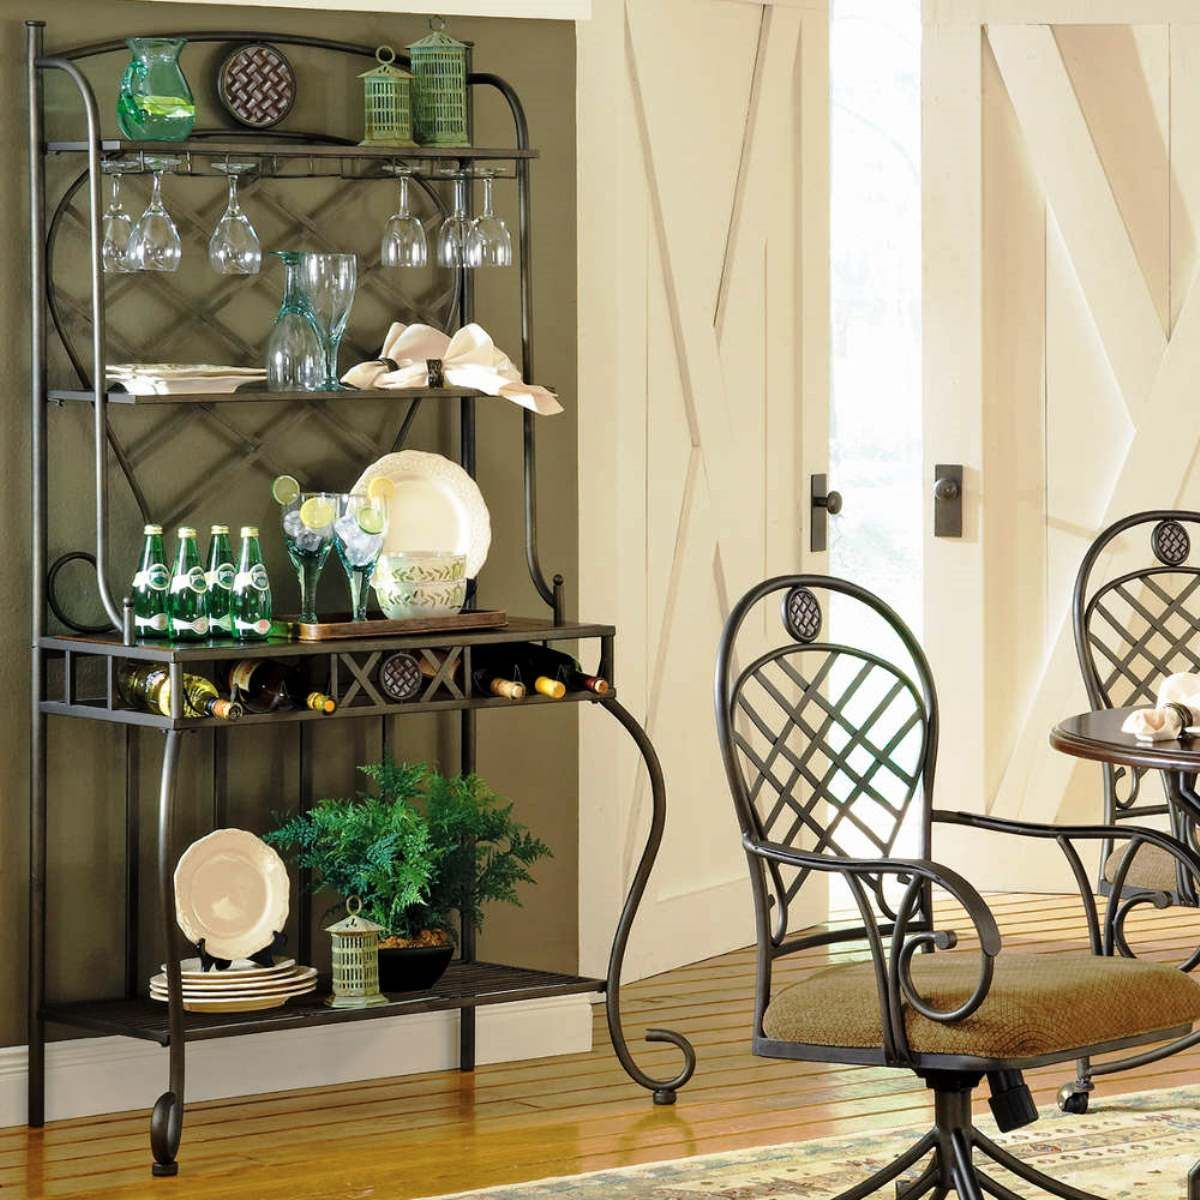 Awesome Steve Silver Wimberly Bakers Rack Kitchen Or Dining Room Decor Storage  Gift.I Just Like The Gray Wall Color :) Part 4